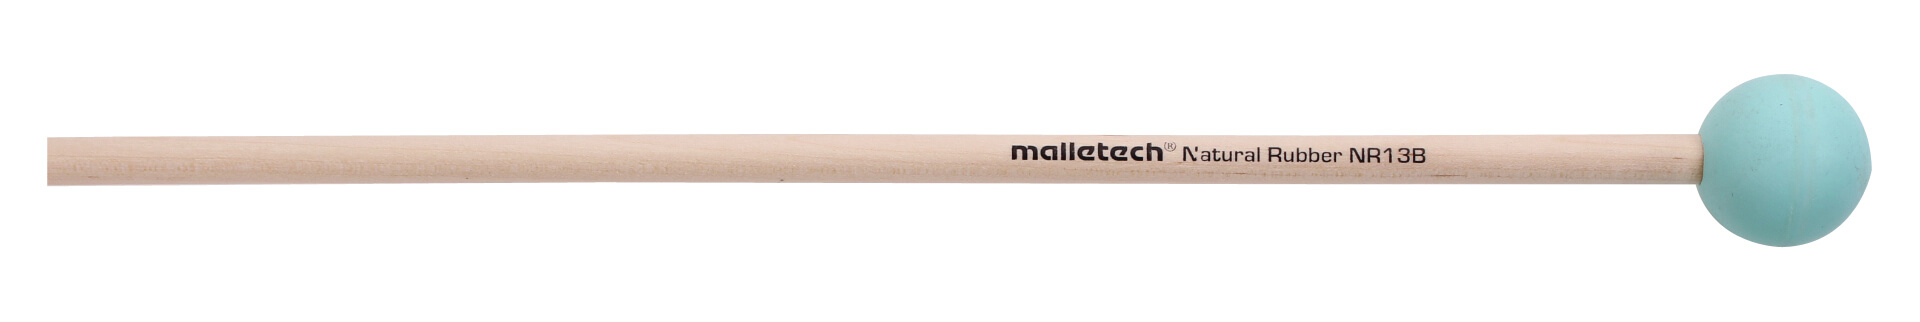 Malletech NR13B Natural Rubber Series